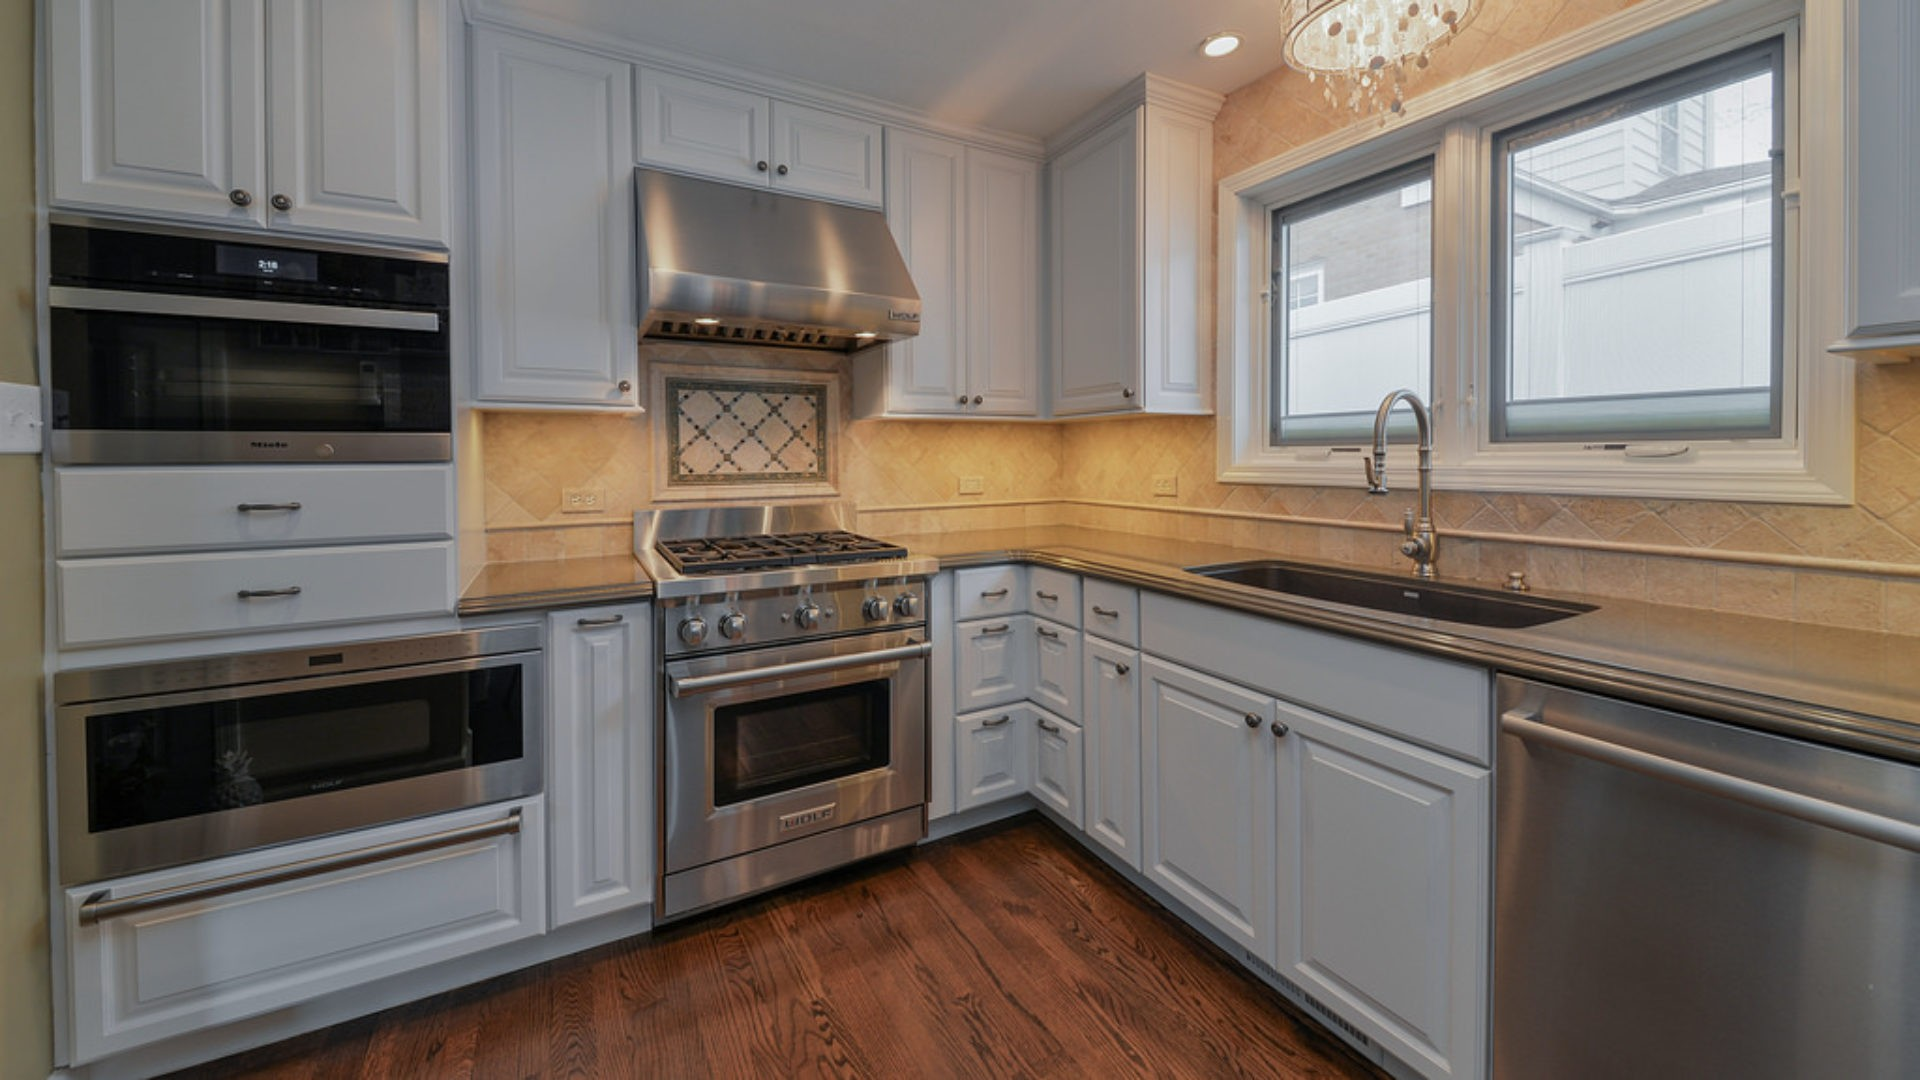 Tallahassee Kitchen & Bath Remodeling Team